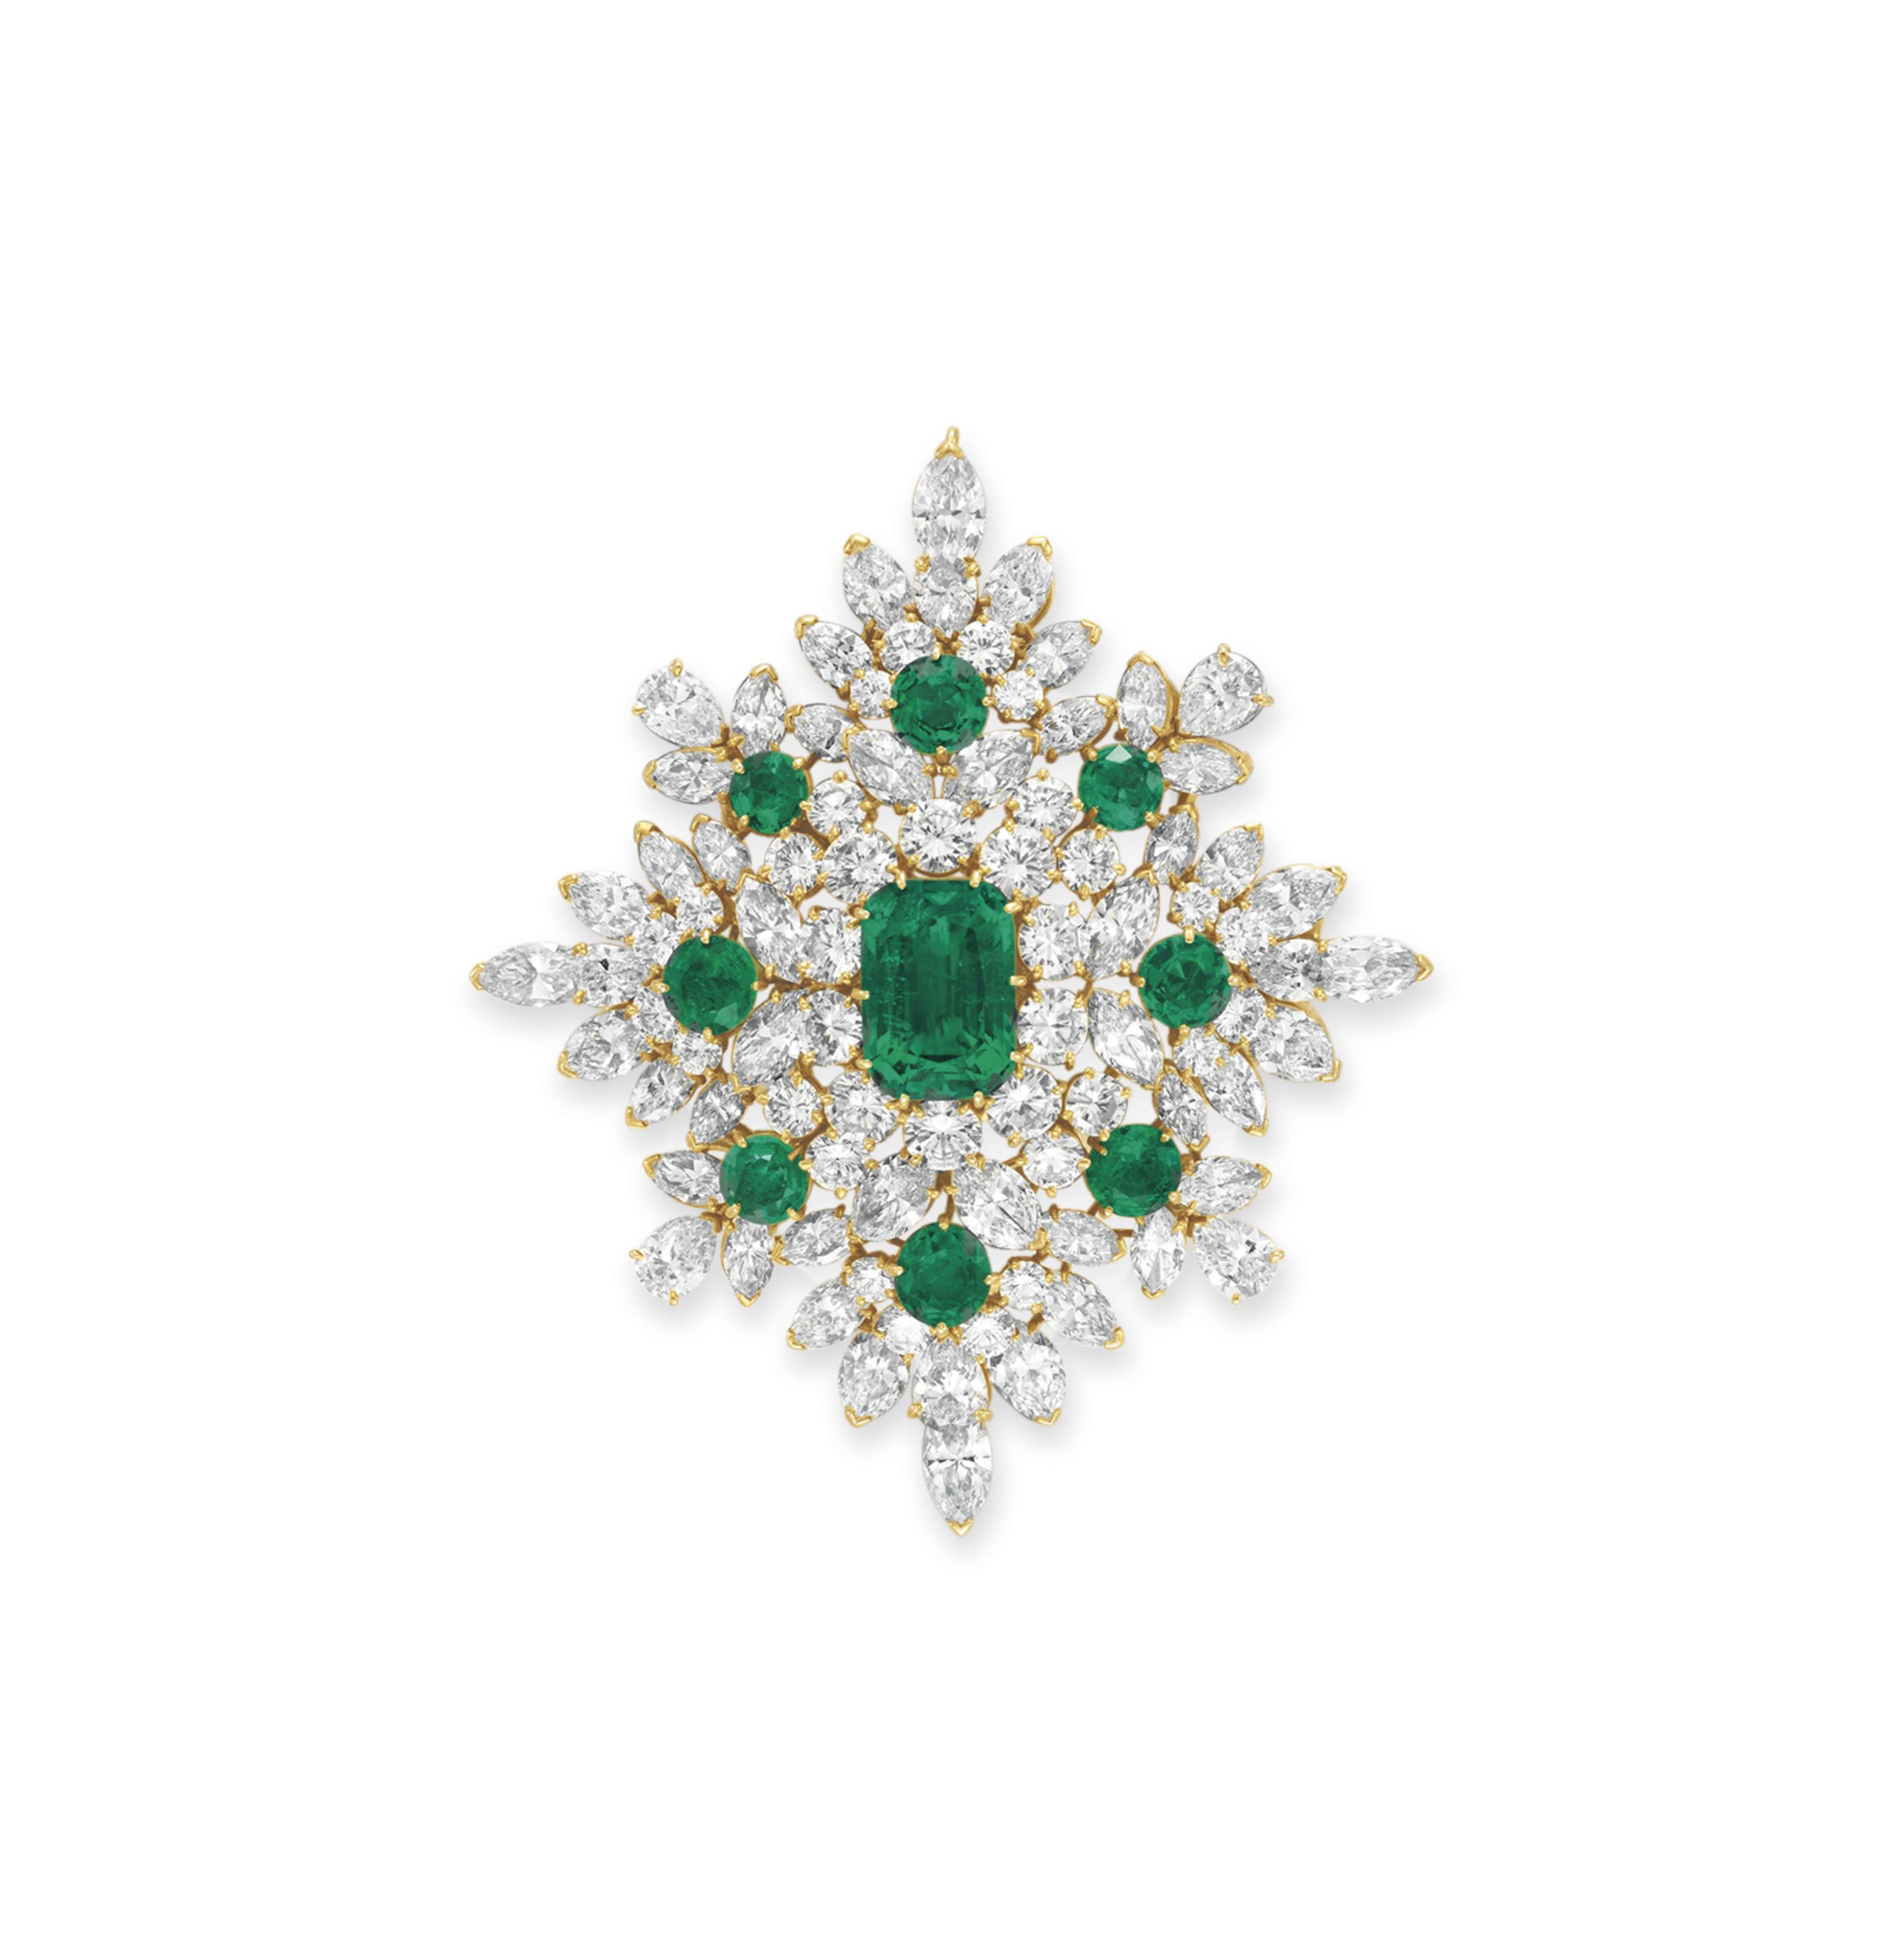 AN HISTORIC EMERALD AND DIAMOND BROOCH, BY VAN CLEEF & ARPELS